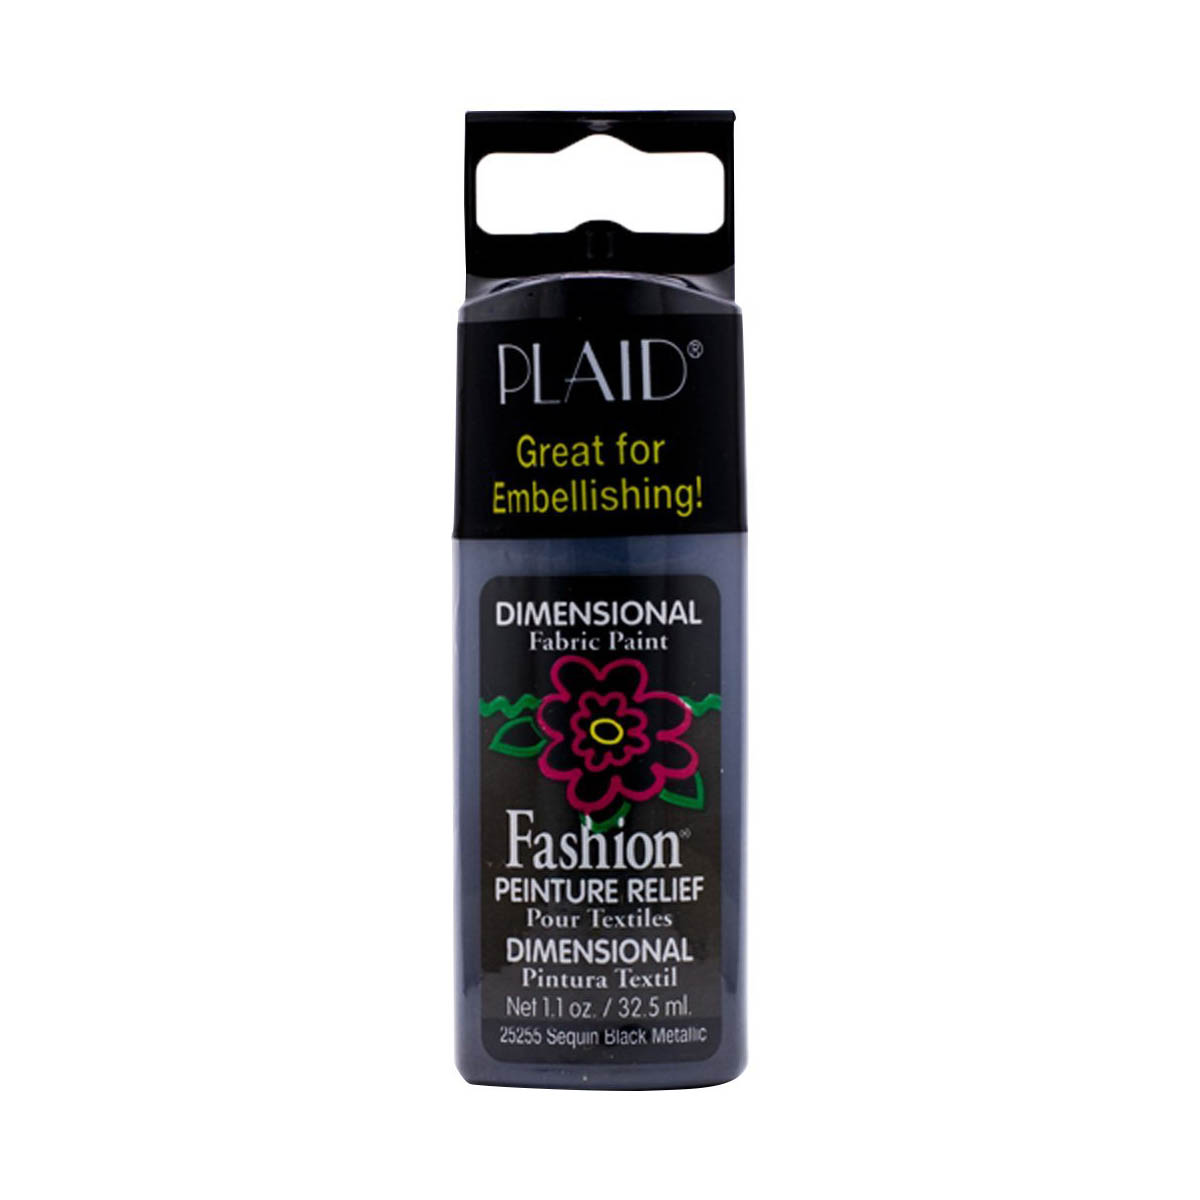 Fashion ® Dimensional Fabric Paint  - Metallic - Sequin Black